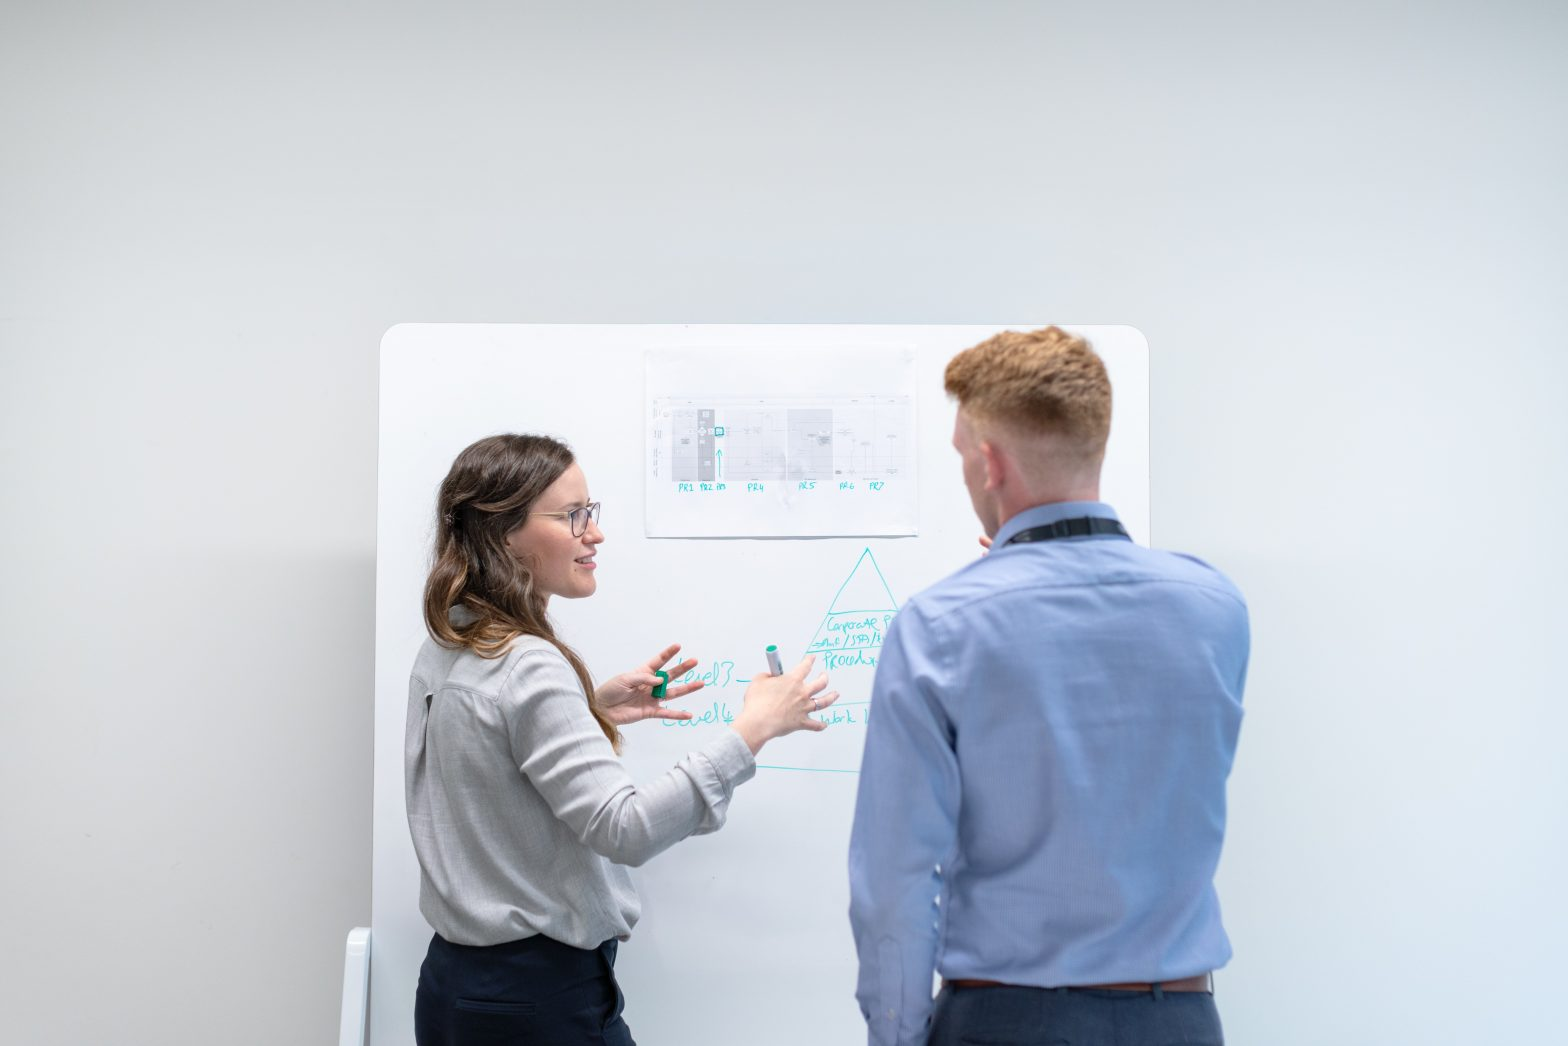 two transportation management engineers discussing graphs in front of a white board